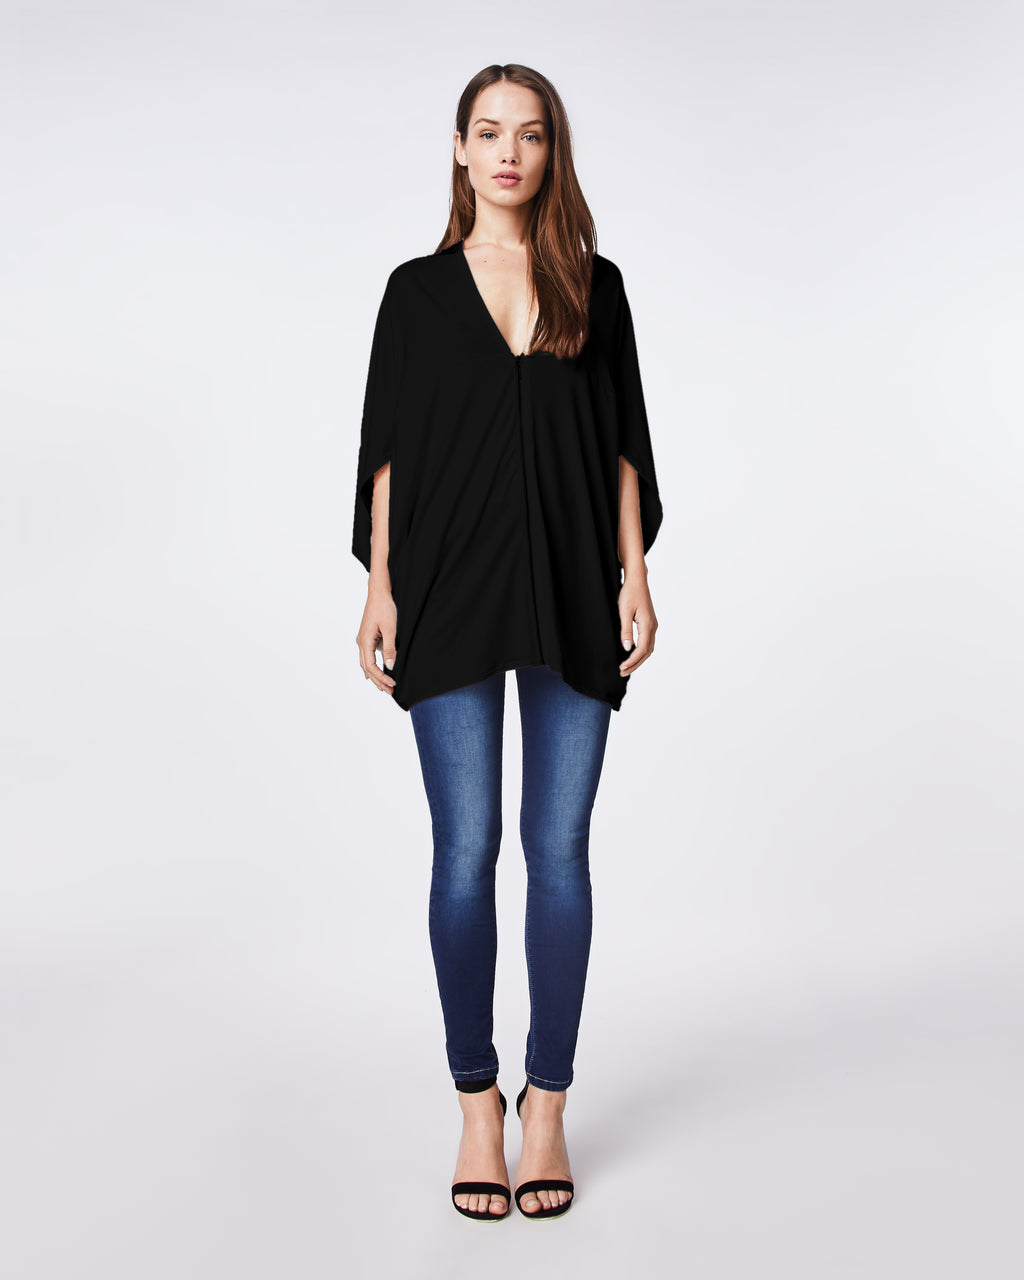 AP0464 - JERSEY COCOON TOP - tops - blouses - Easy and comfortable, this v-neck top features a front zipper. Wear zipped up as a top or unzipped to layer